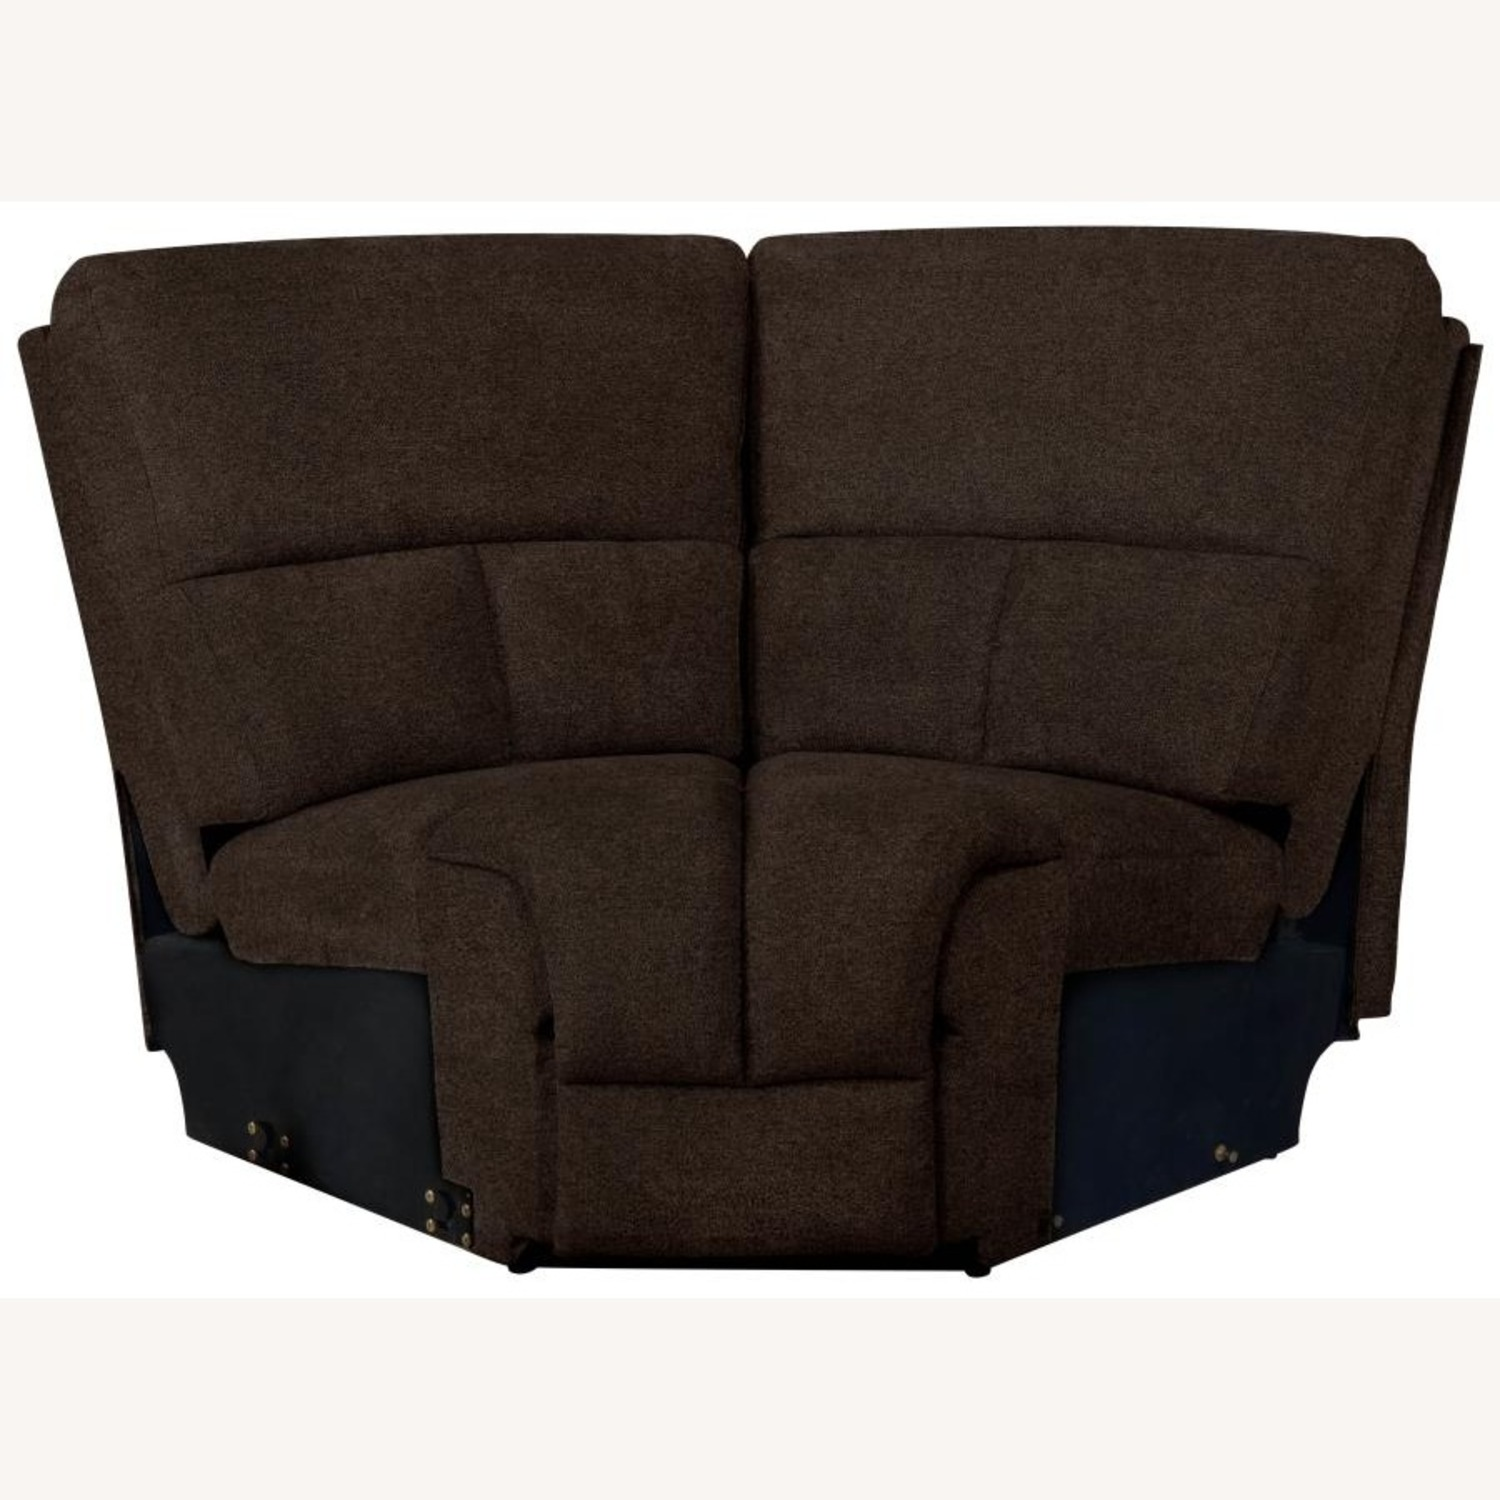 6Piece Power Sectional In Brown Performance Fabric - image-7